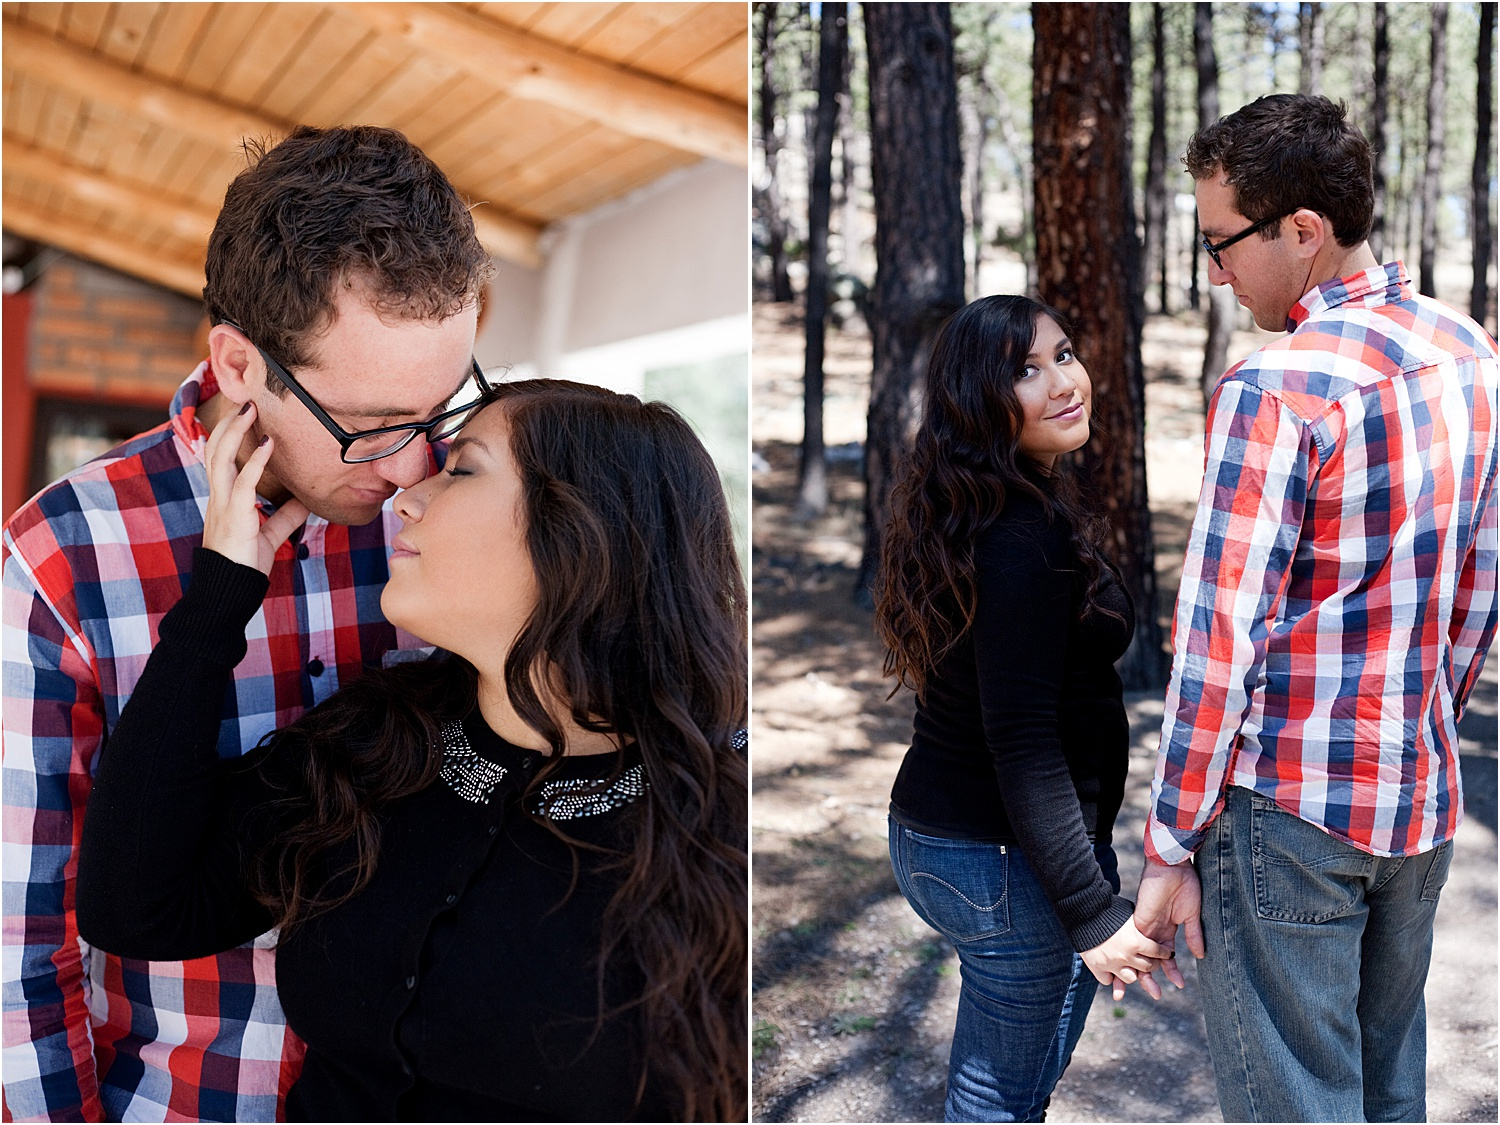 7 - Guide to the Best Poses for Engagement Photos